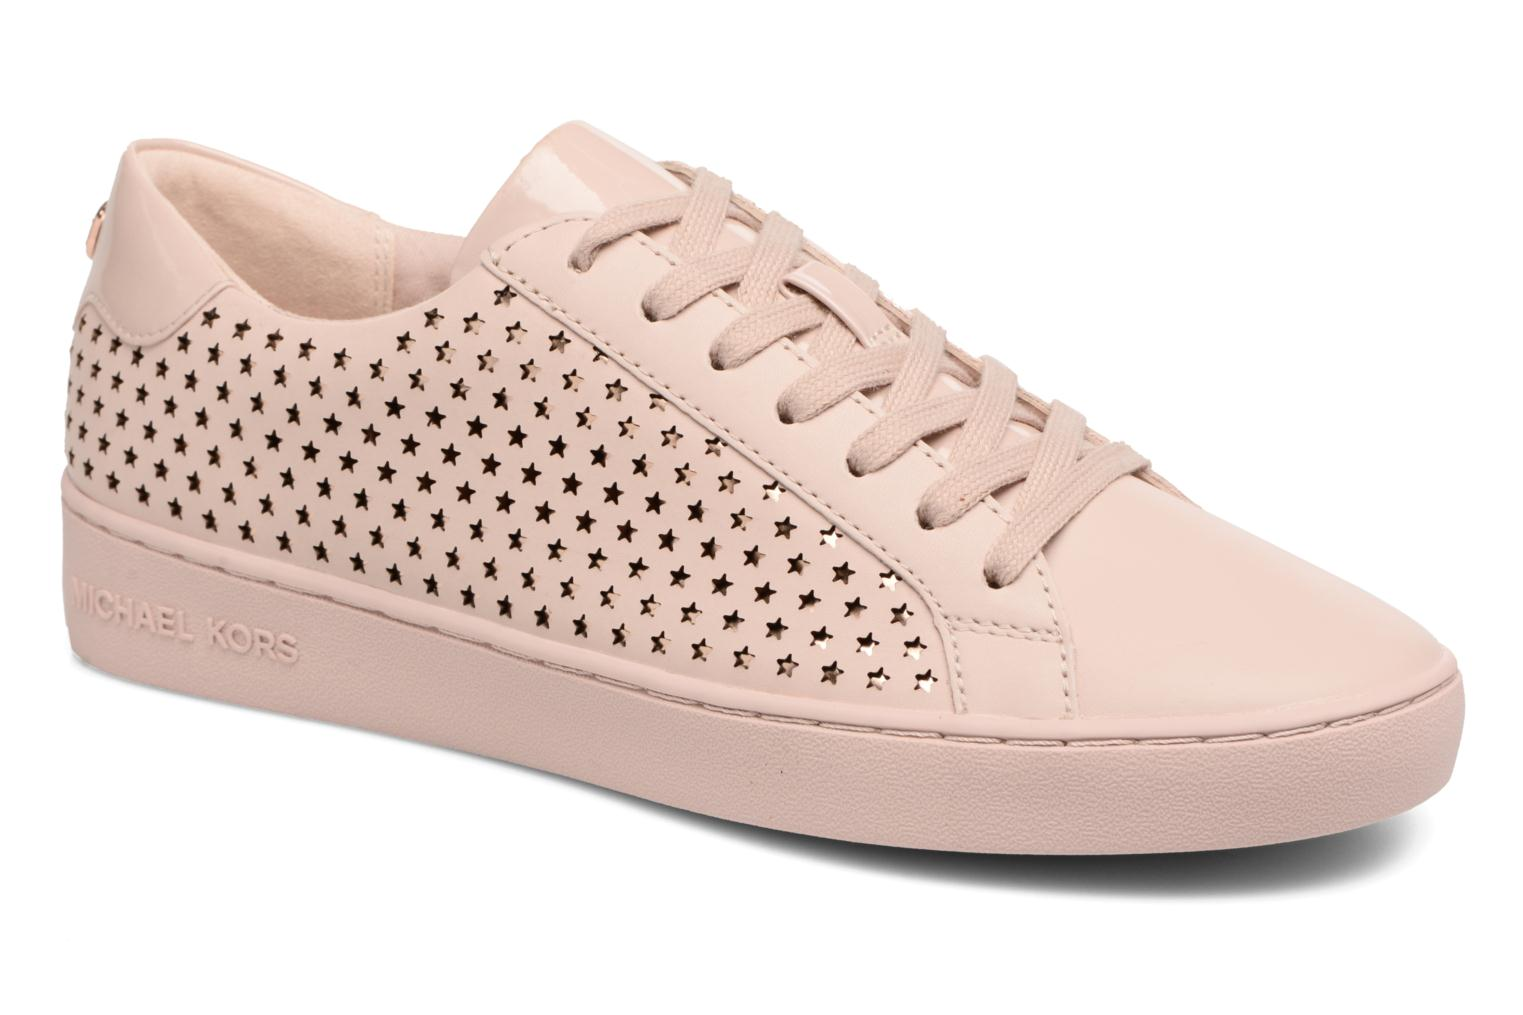 Baskets Nike Argent Irving Lacer Michael Kors QTWmbY